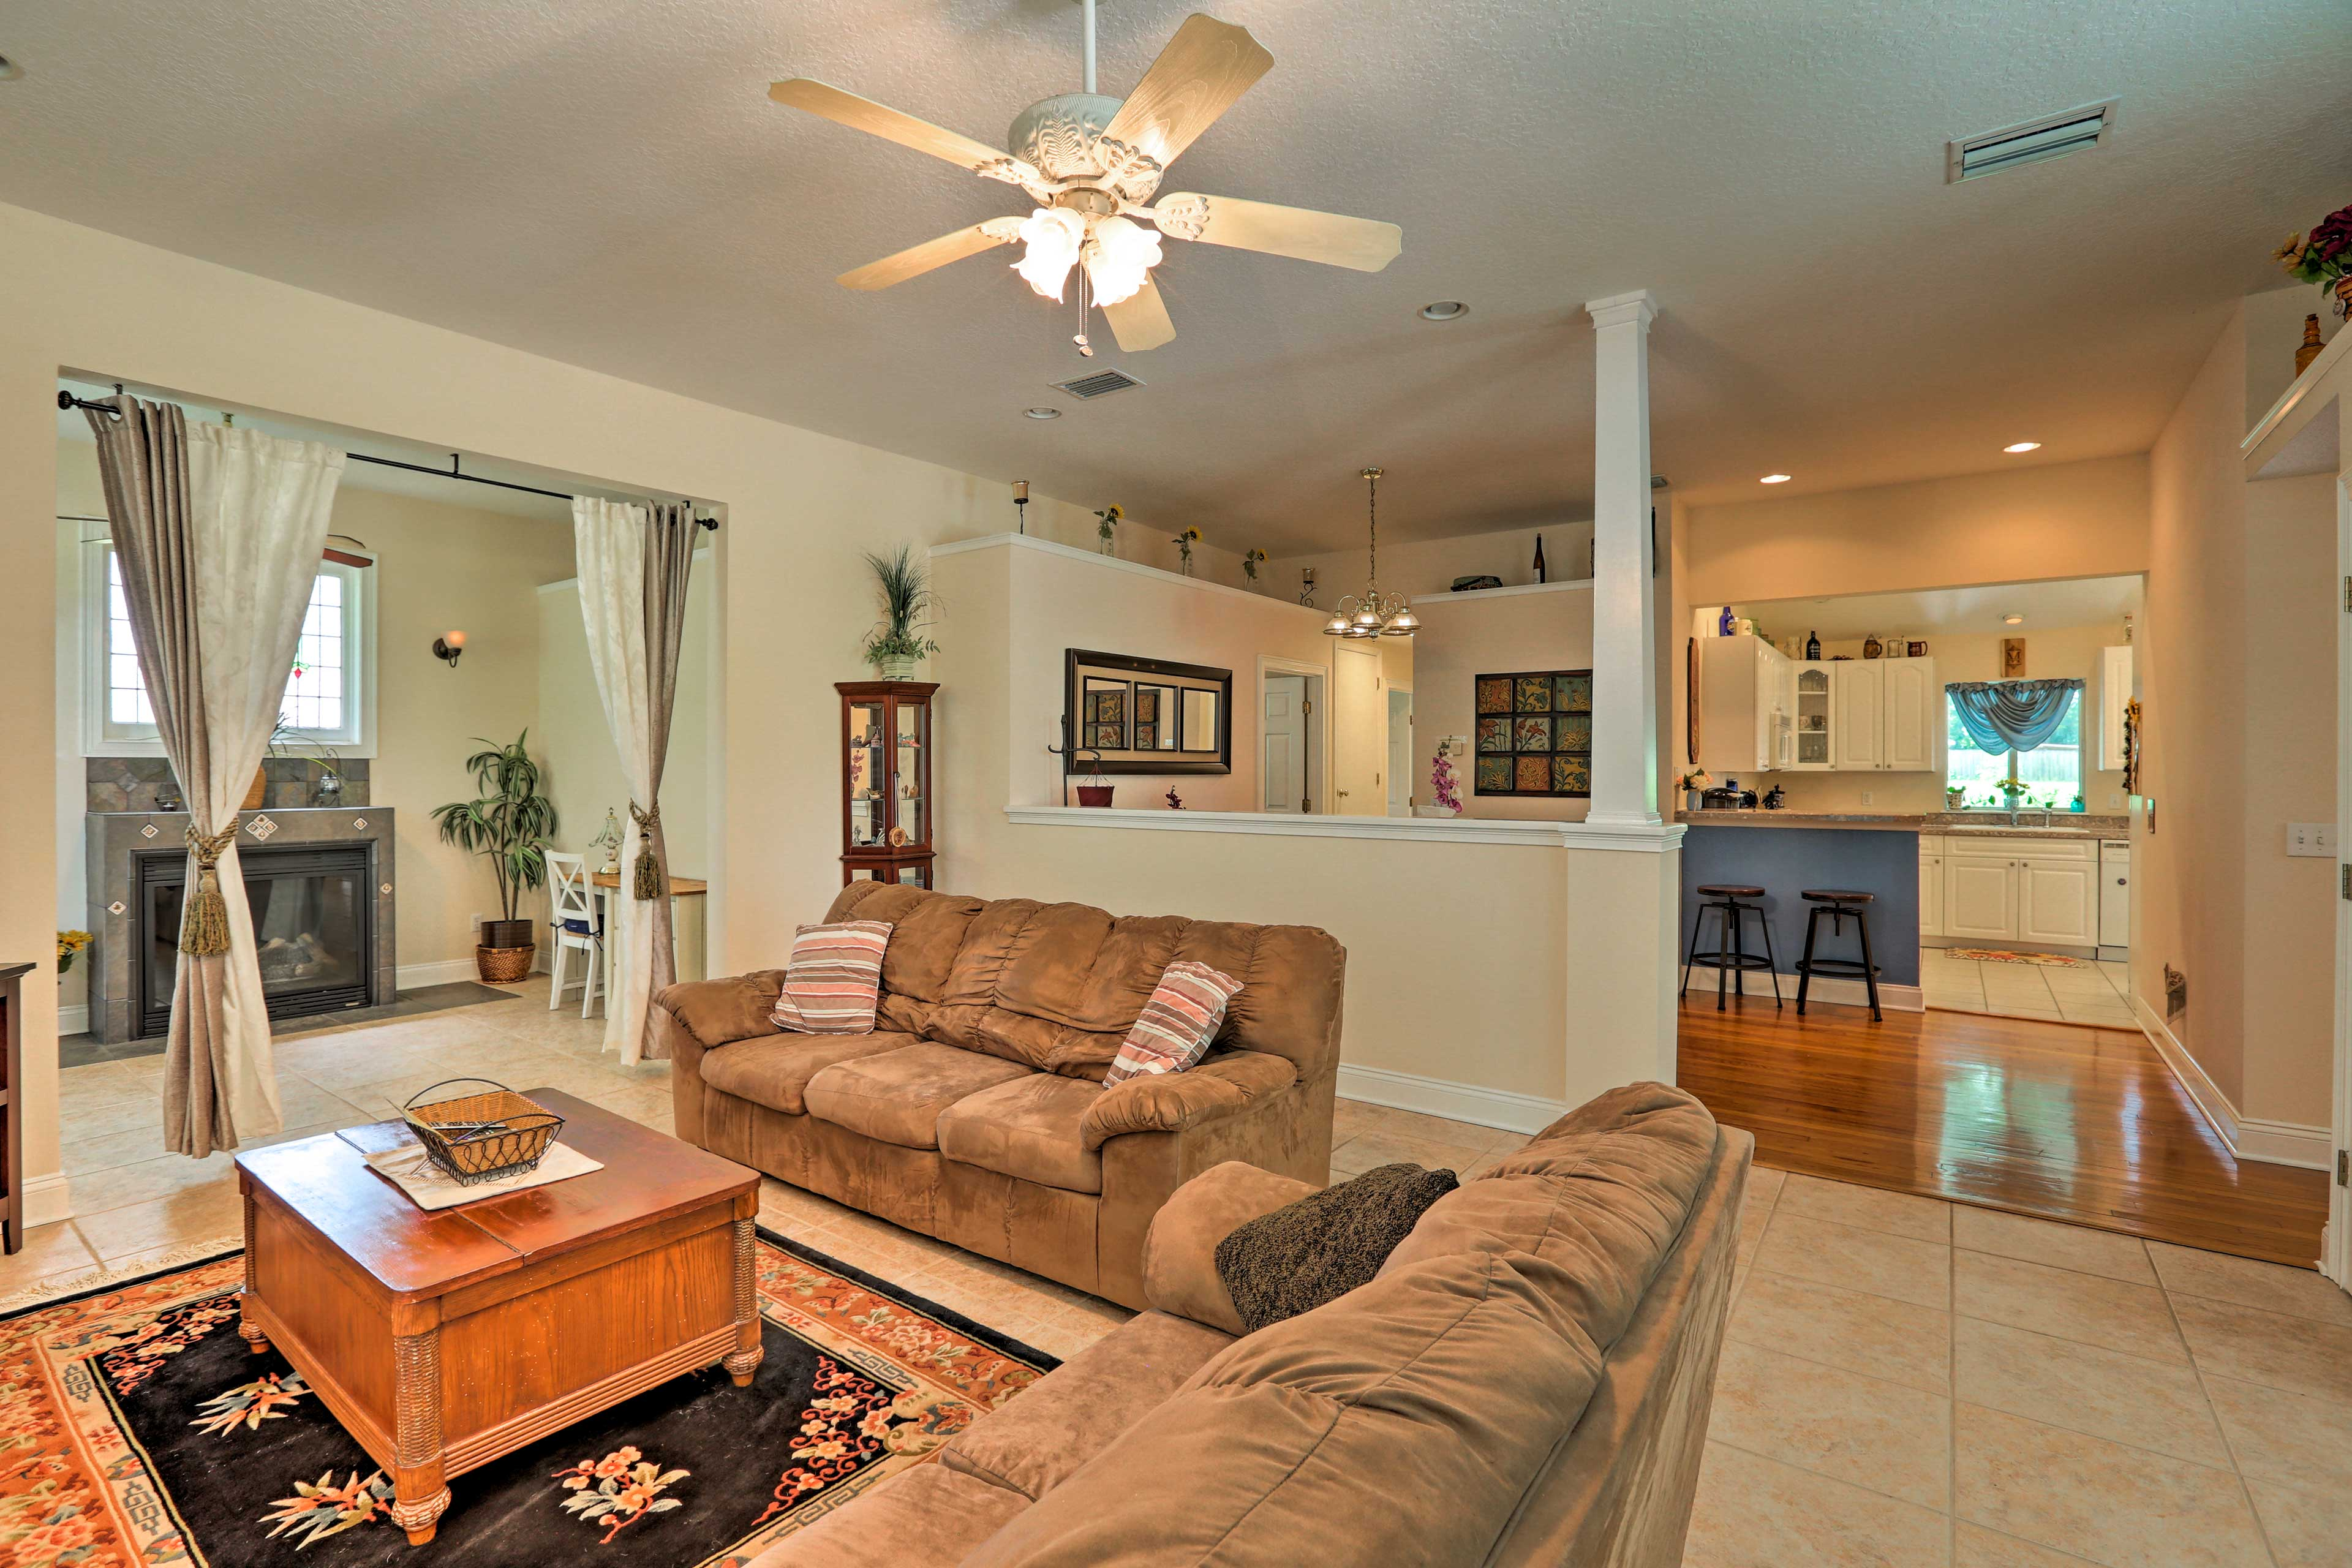 This 3-bed, 2-bath vacation rental sleeps up to 5 guests.